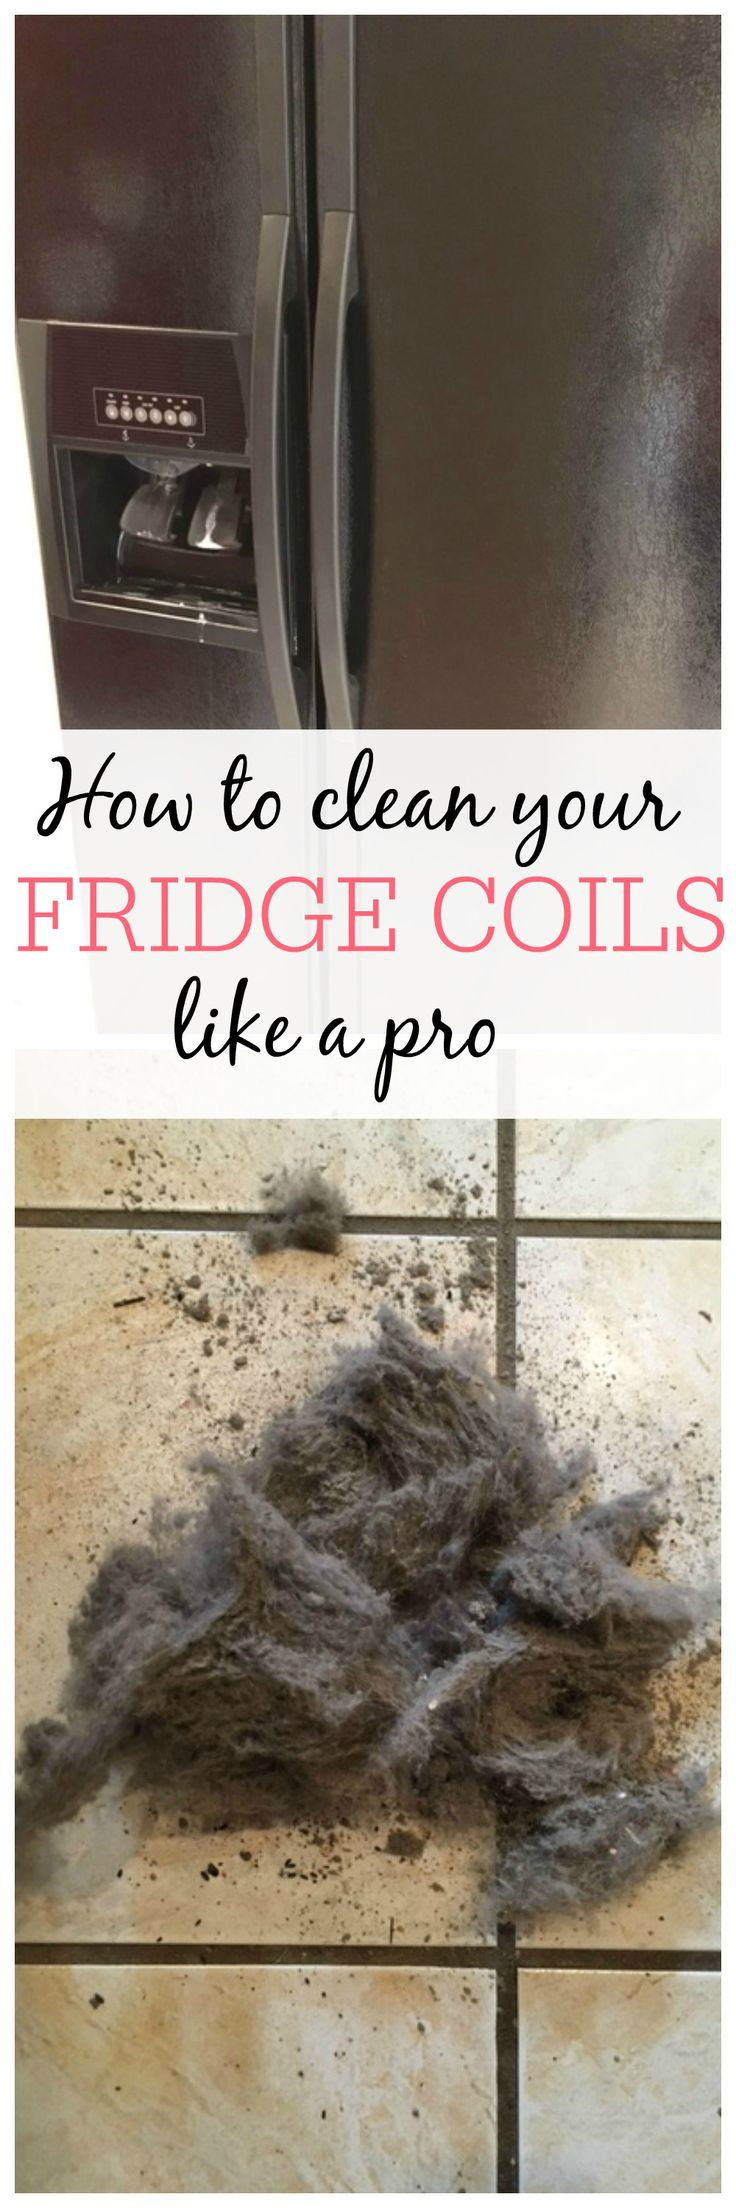 Cleaning the fridge coils not only helps keep your house cleaner but also saves…